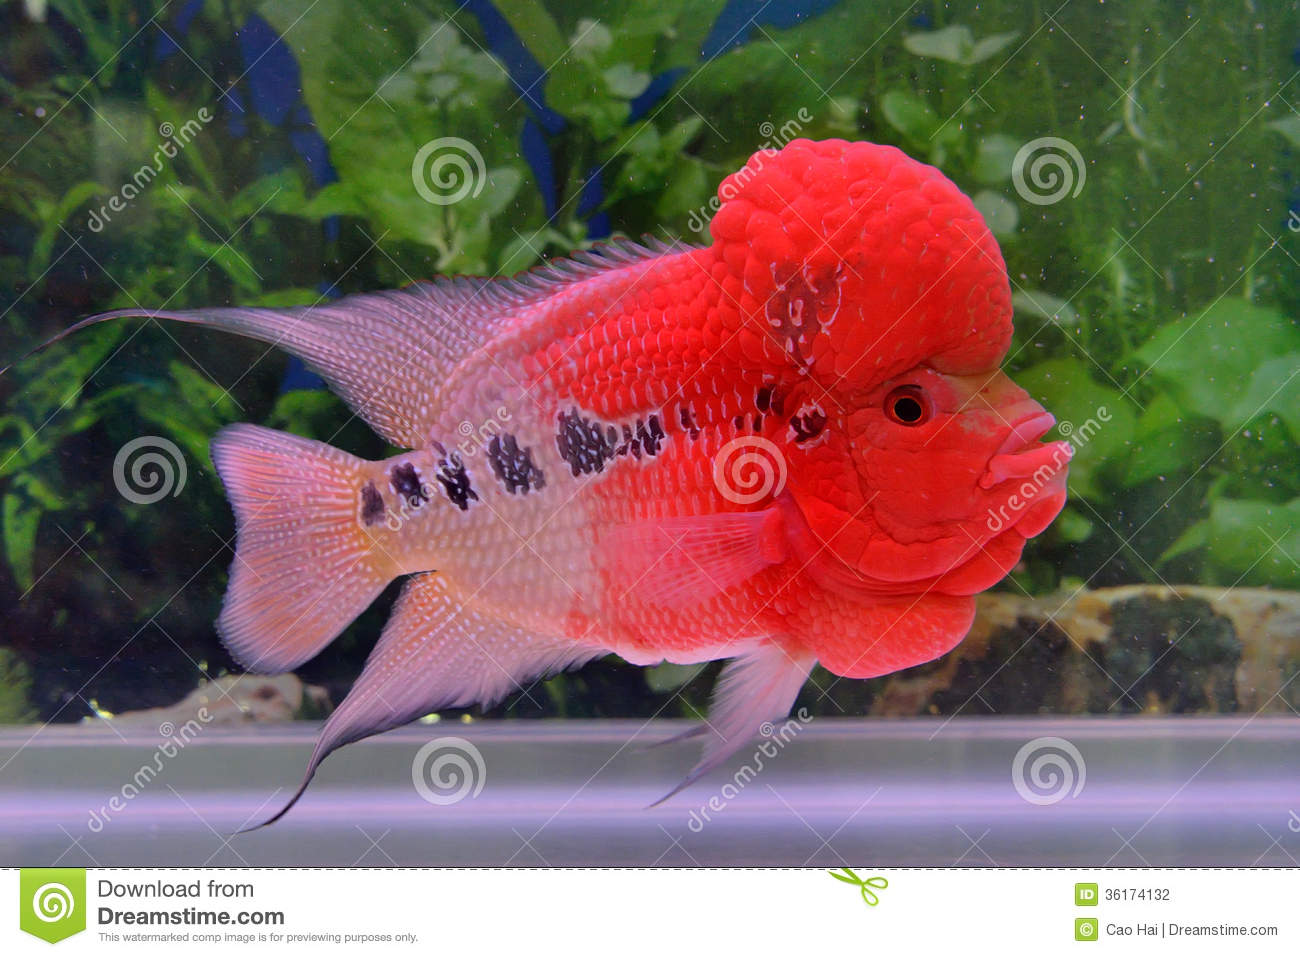 A red flowerhorn cichlid stock photo. Image of cichlid - 36174132